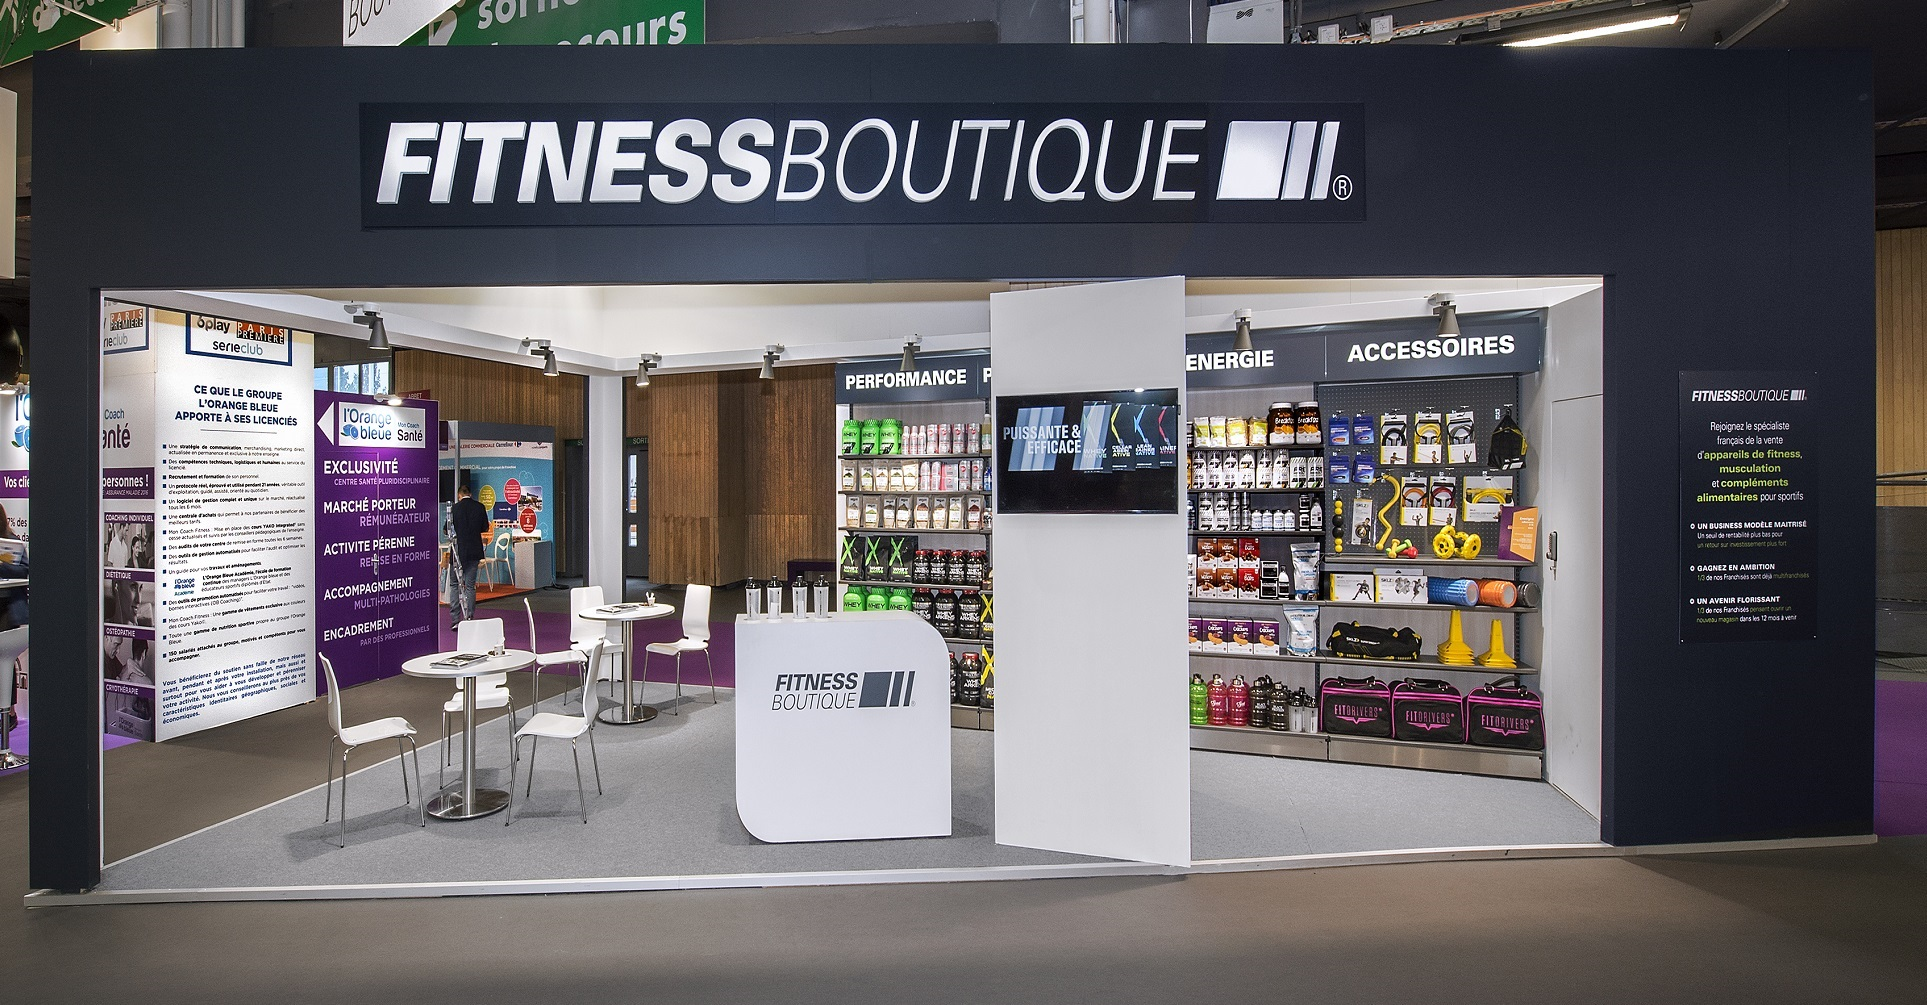 Salon Des Grandes Ecoles Paris 2017 Bilan Du Salon De La Franchise Et Du Bodyfitness Paris